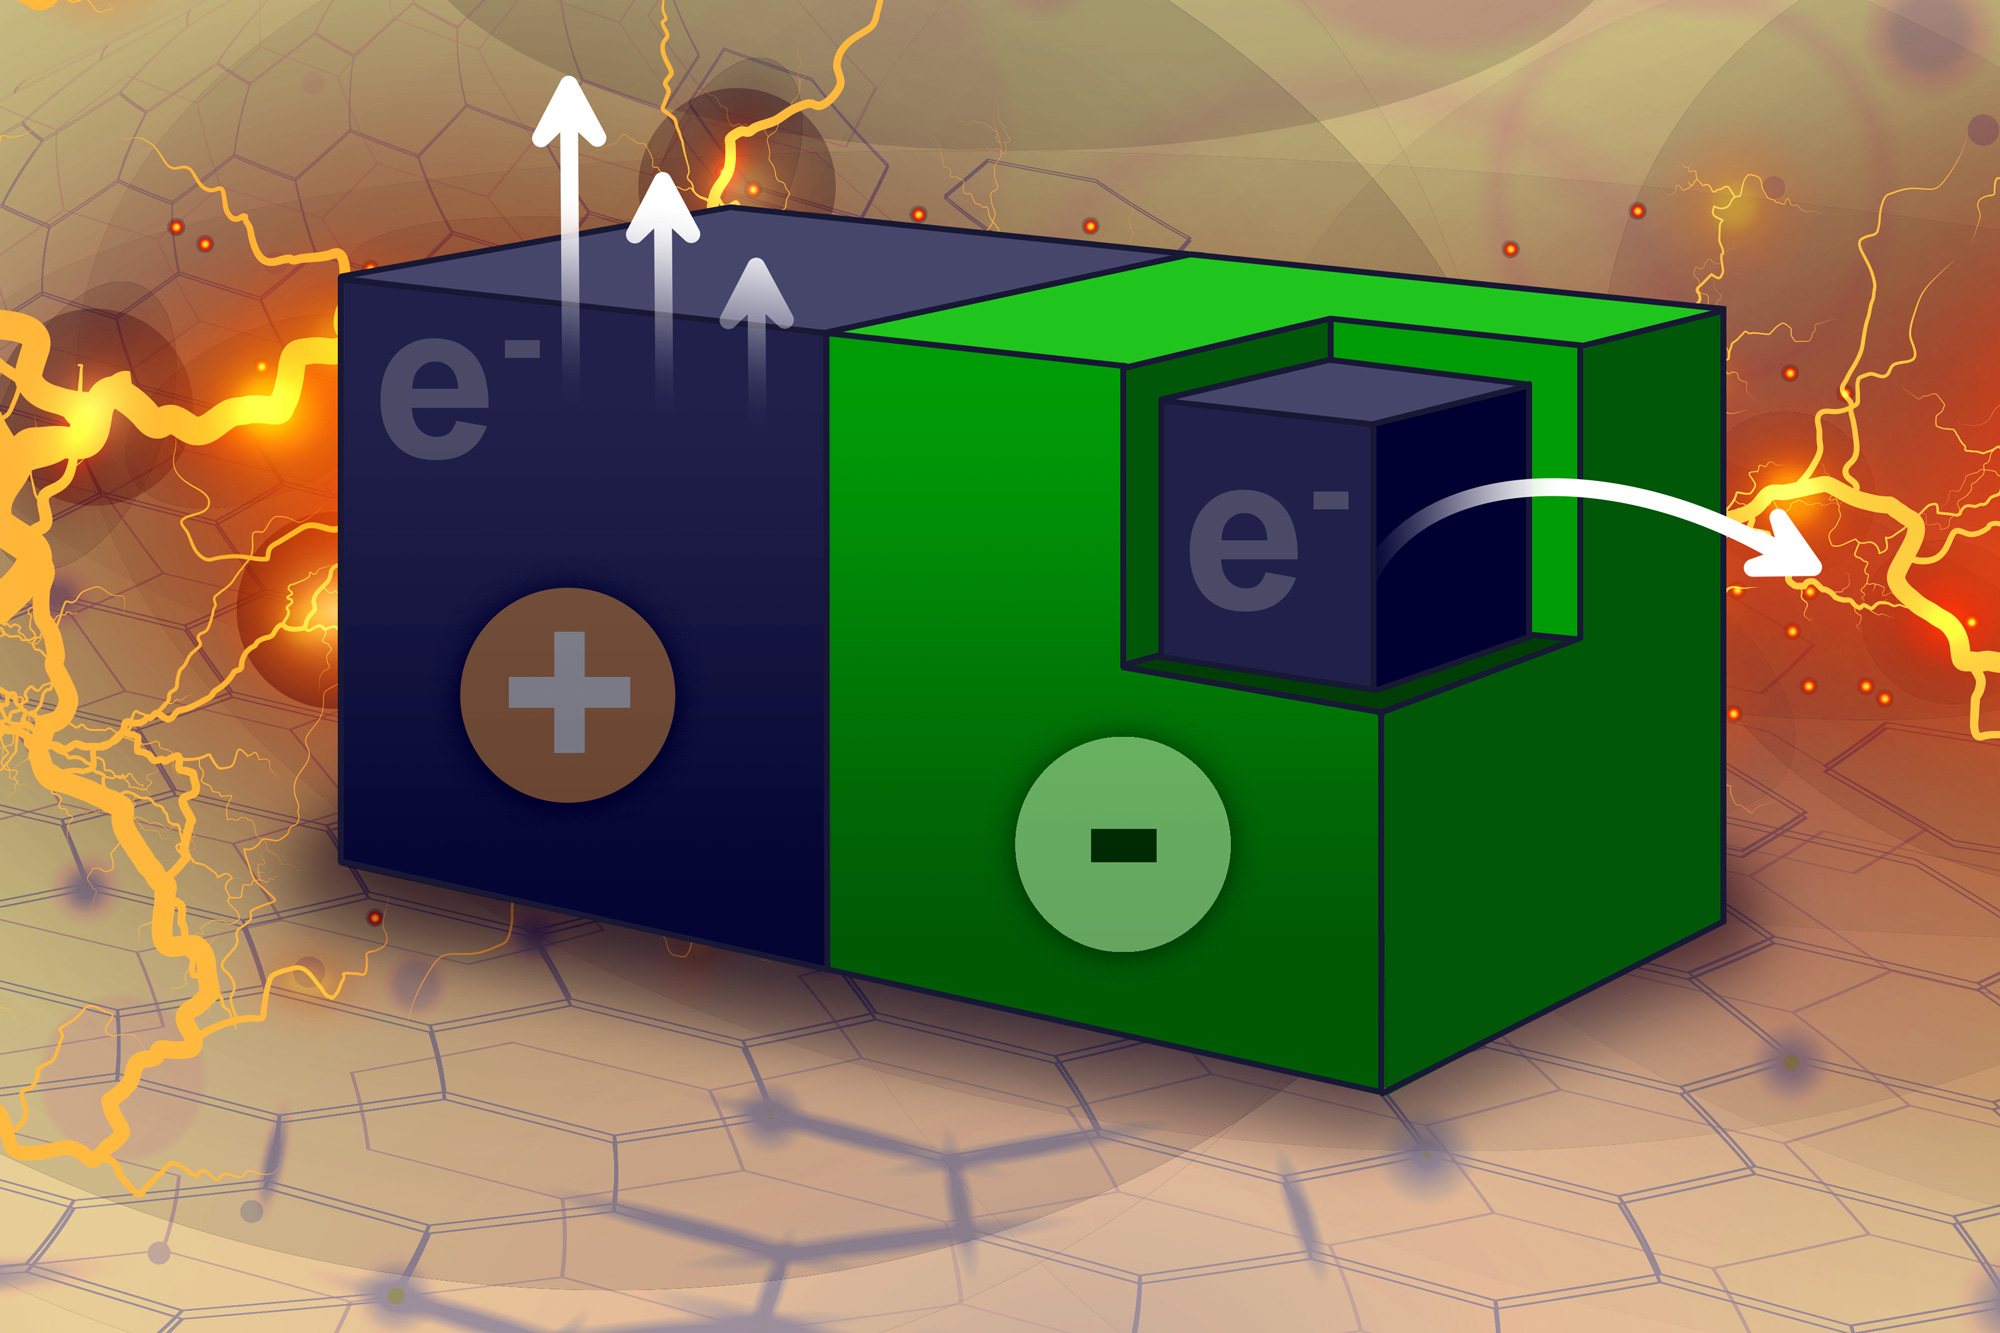 Tiny particles power chemical reactions